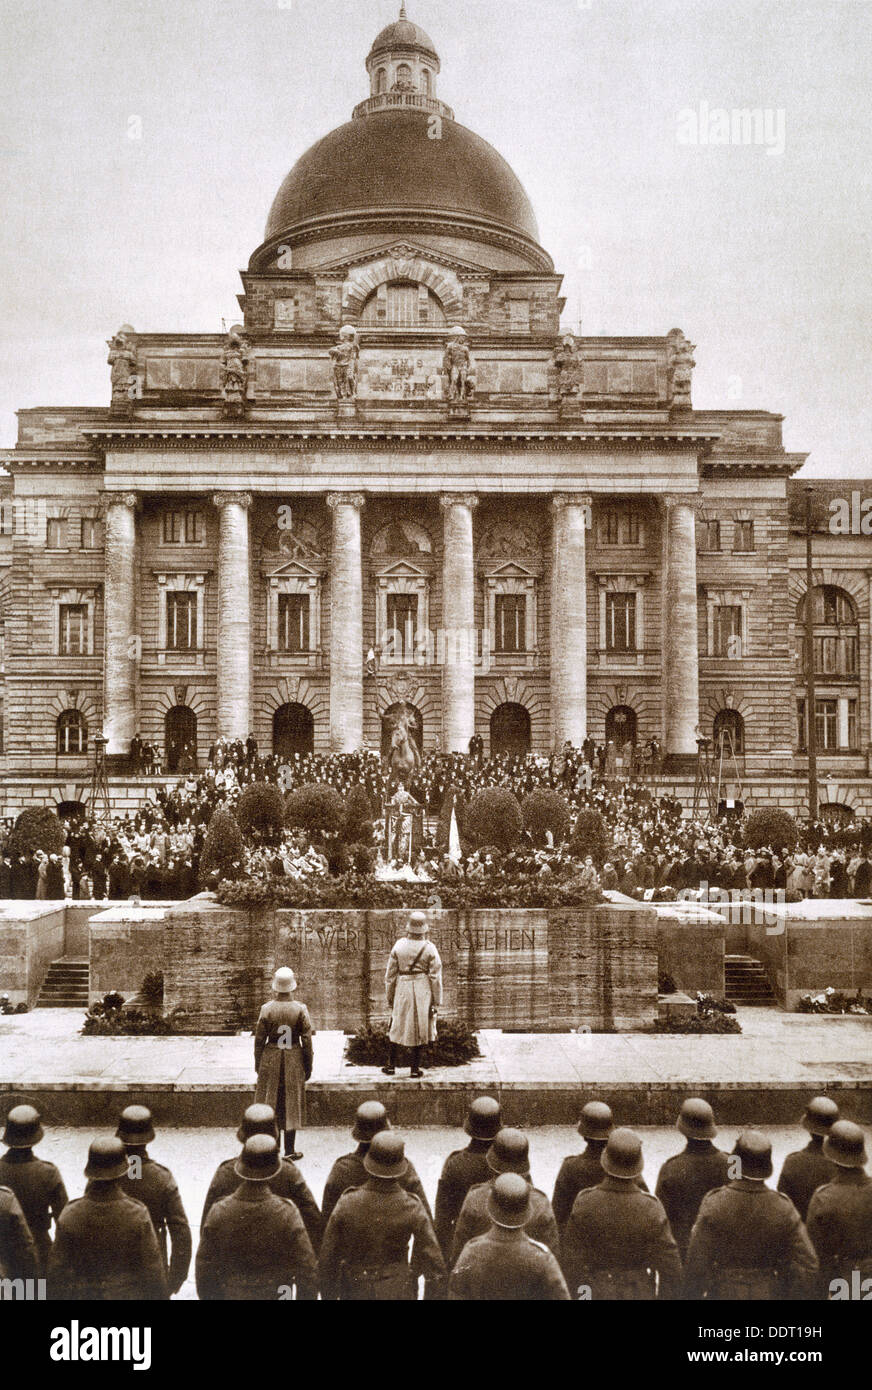 Ceremony honouring the German war dead of WWI before the Army Museum in Munich, 1920s. Artist: Unknown - Stock Image